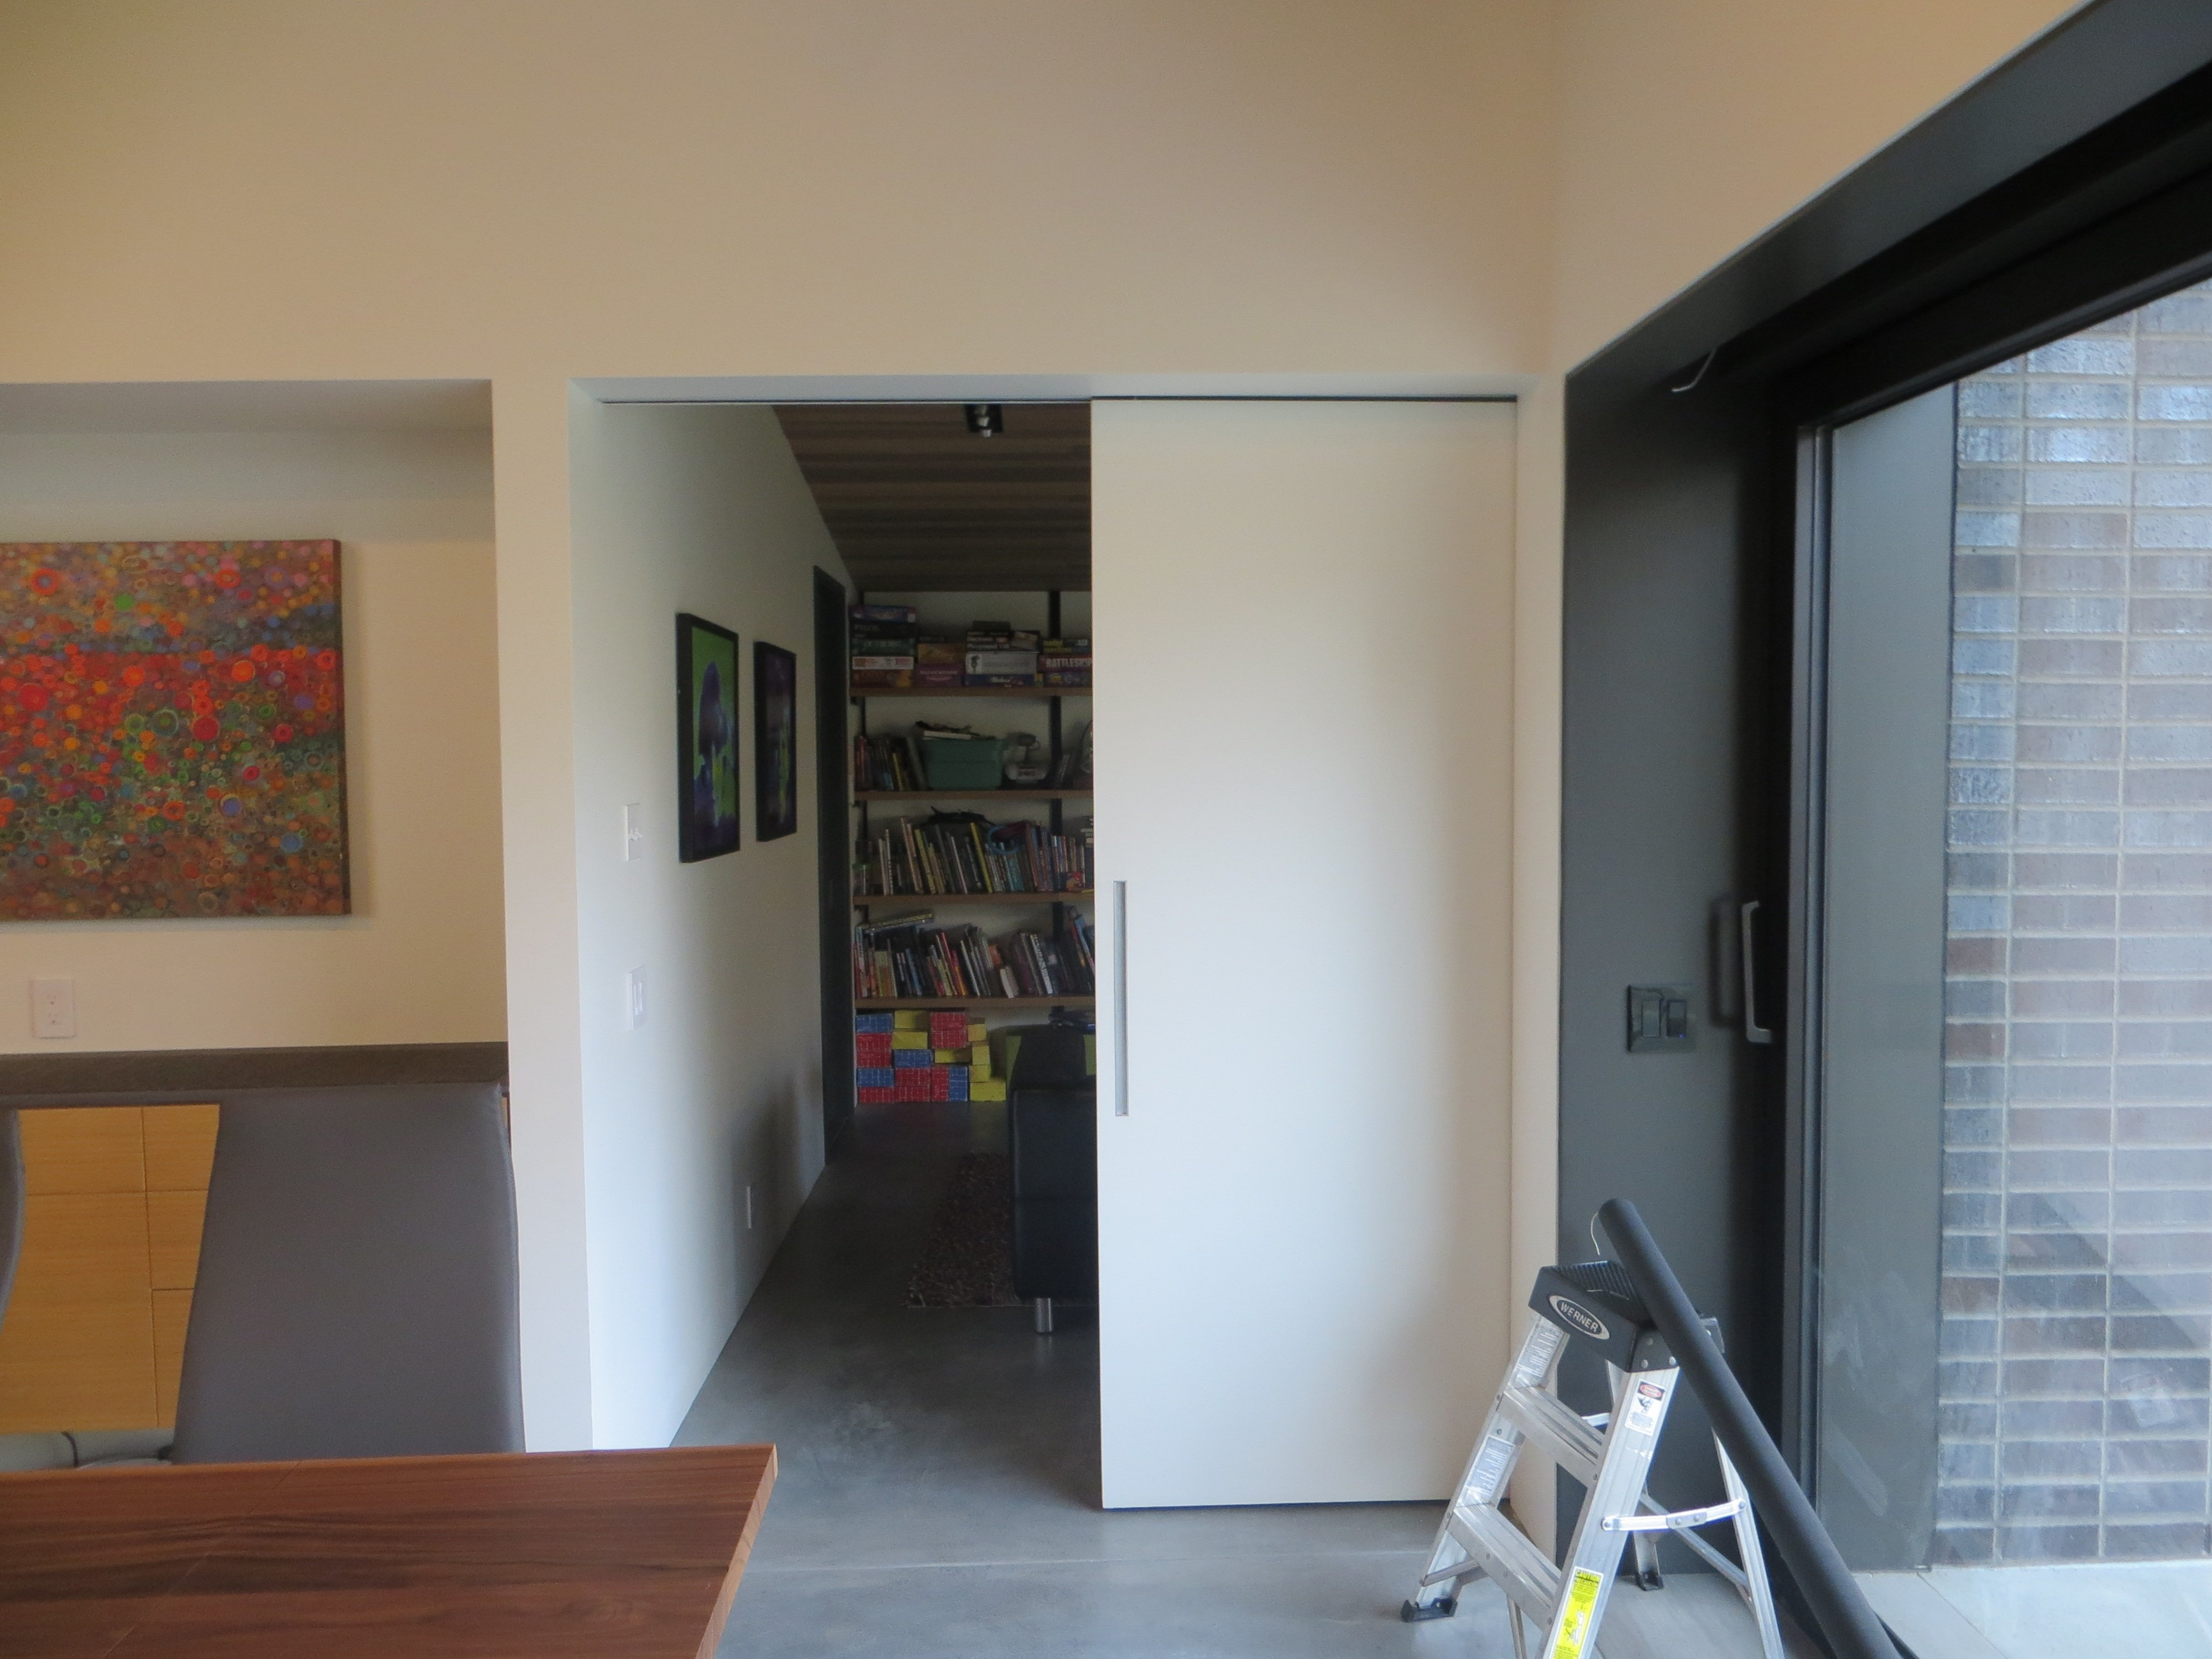 Soundproof Sliding Doorssoundproof sliding doors